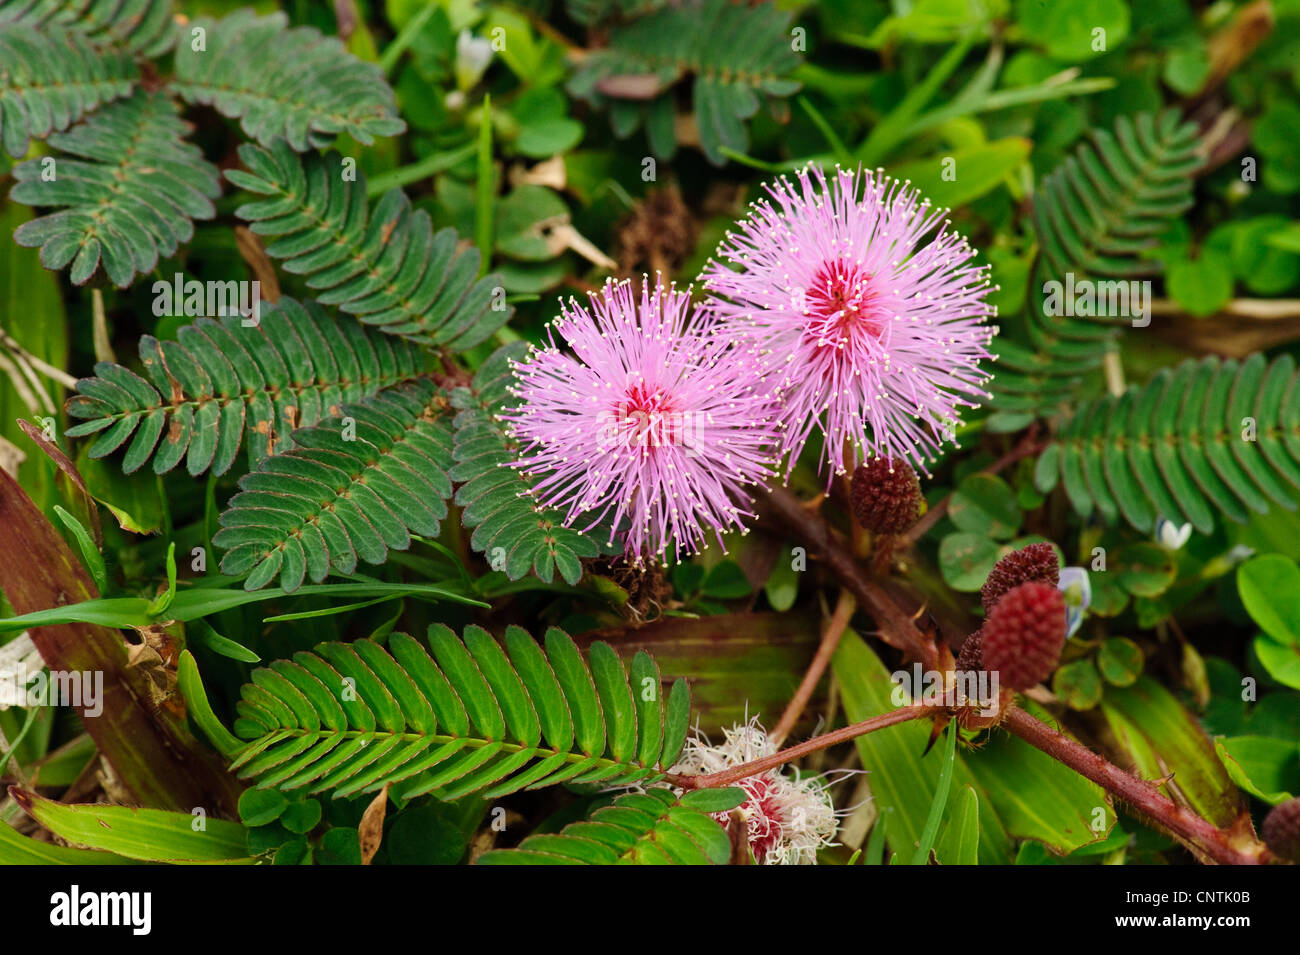 sensitive plant touch me not mimosa pudica flowering stock photo royalty free image. Black Bedroom Furniture Sets. Home Design Ideas